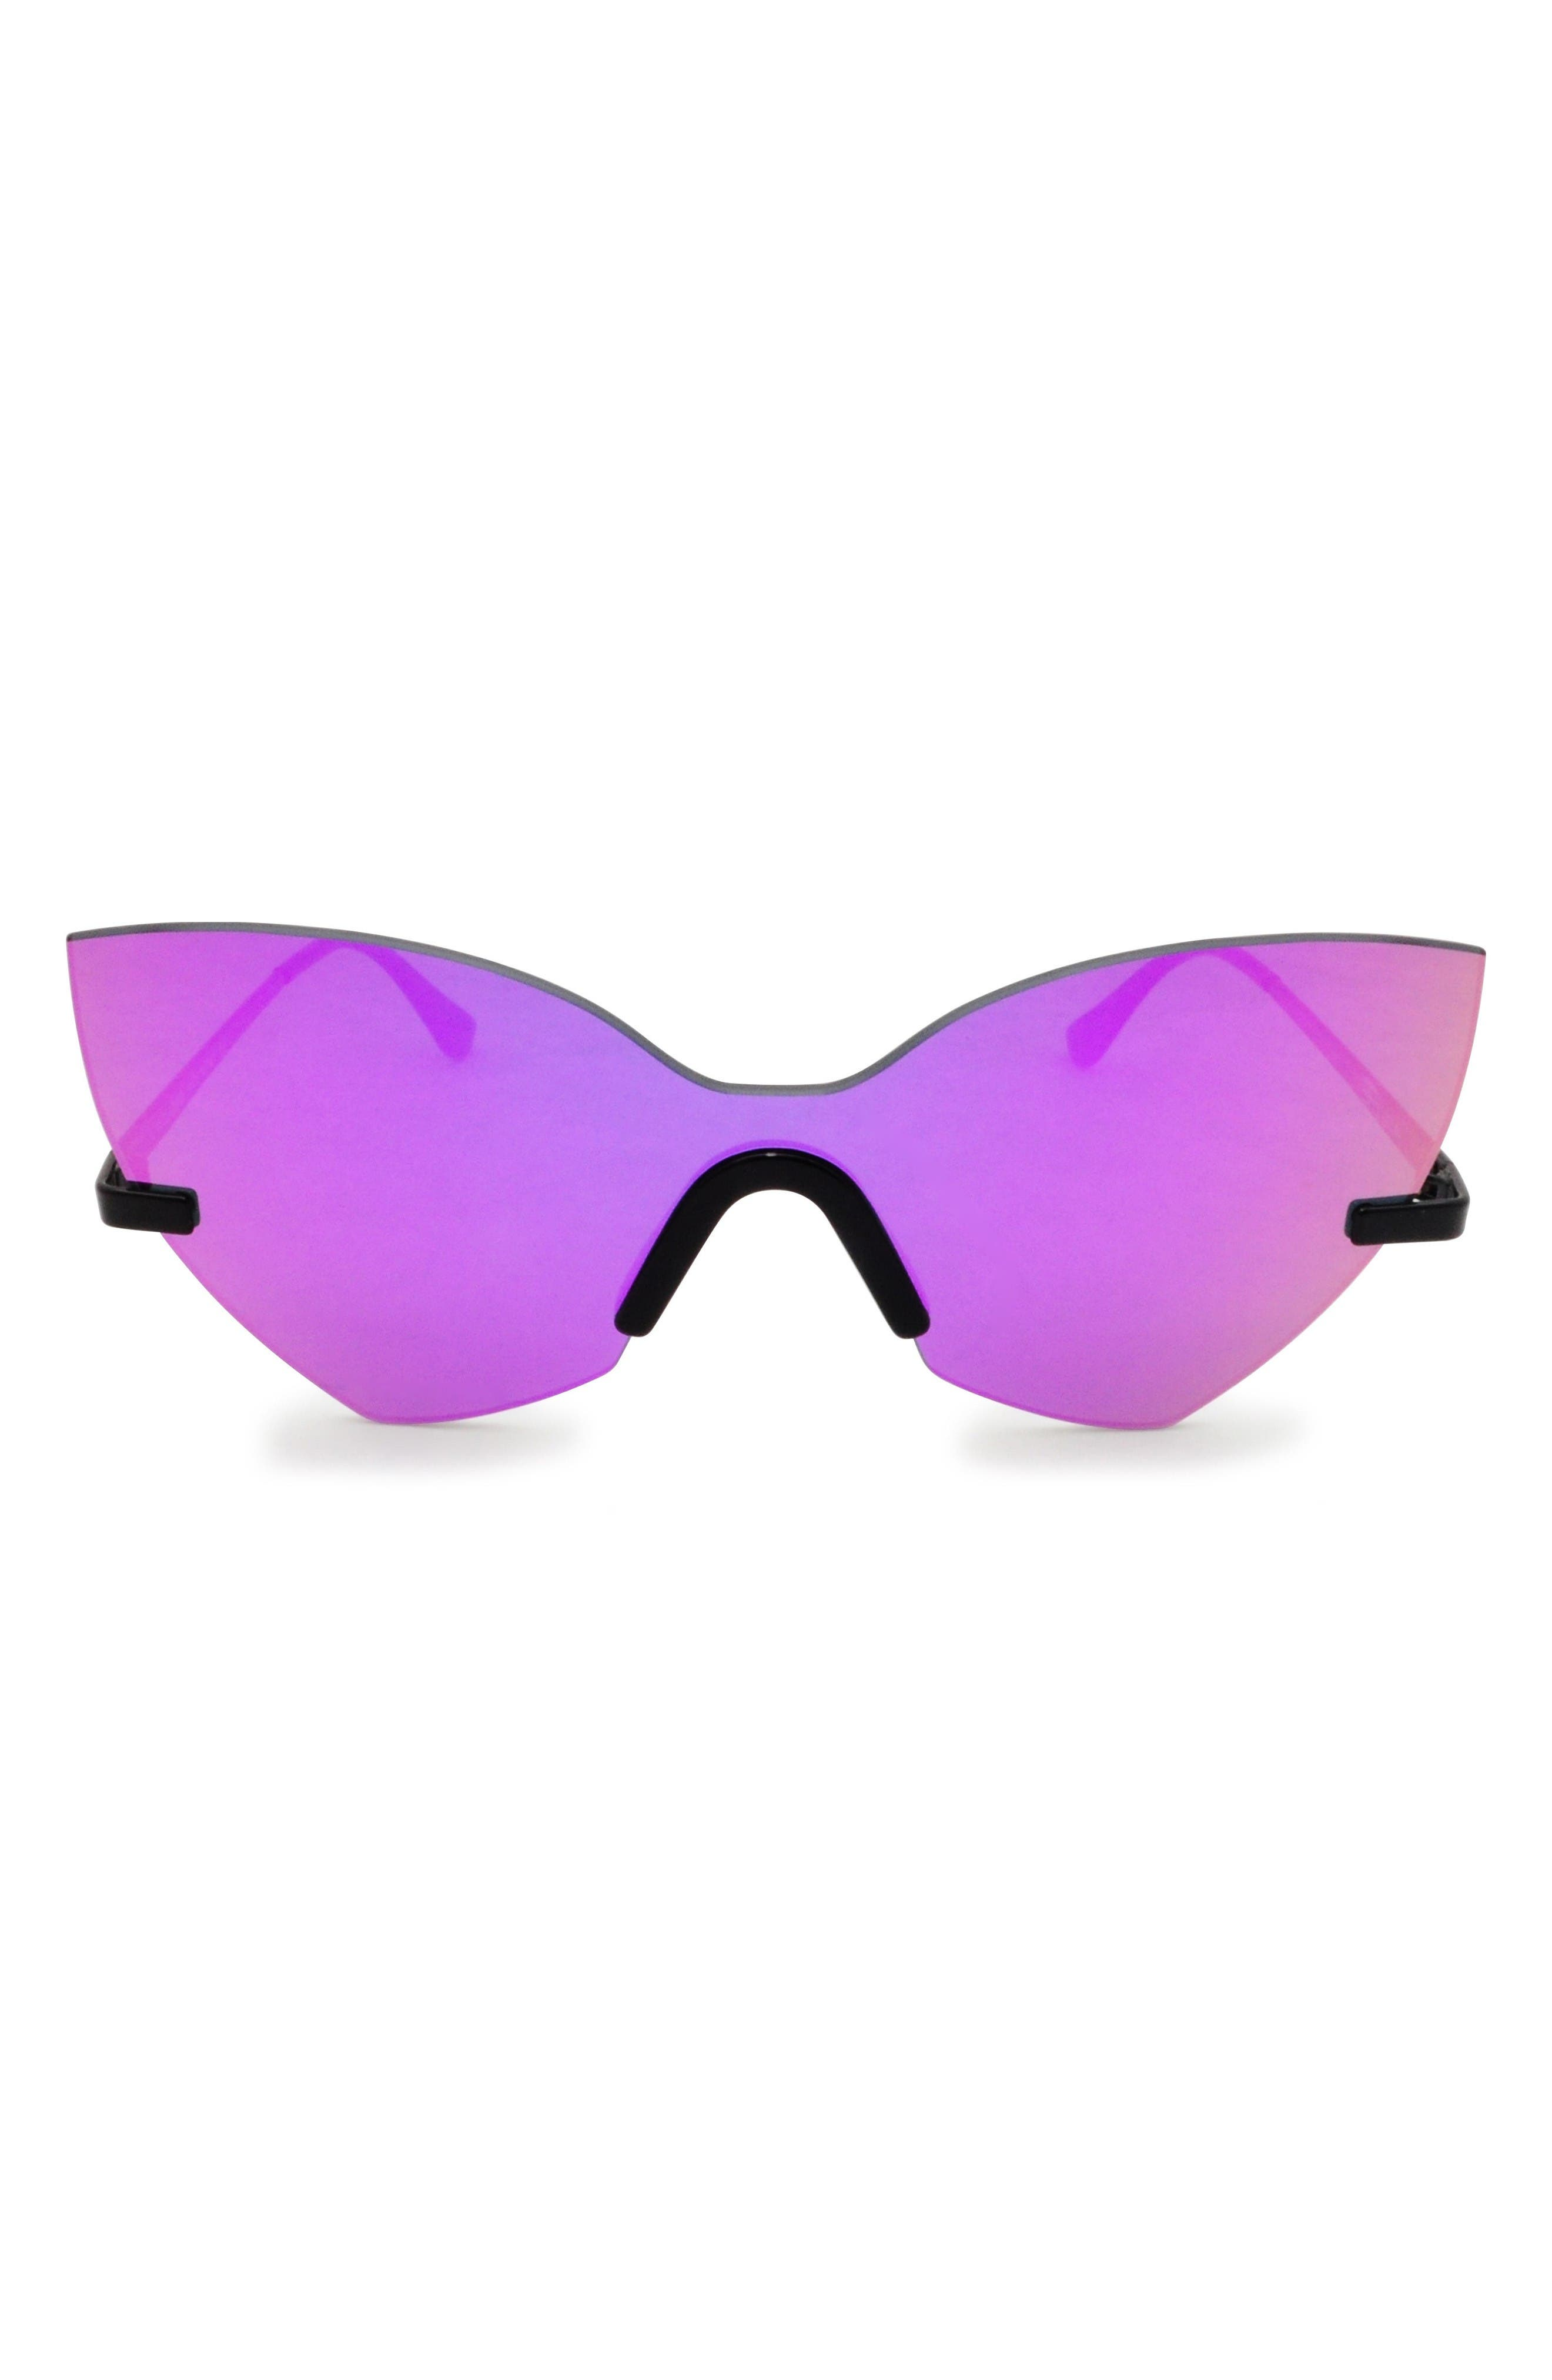 Alternate Image 1 Selected - GLASSING 55mm Cat Eye Shield Sunglasses